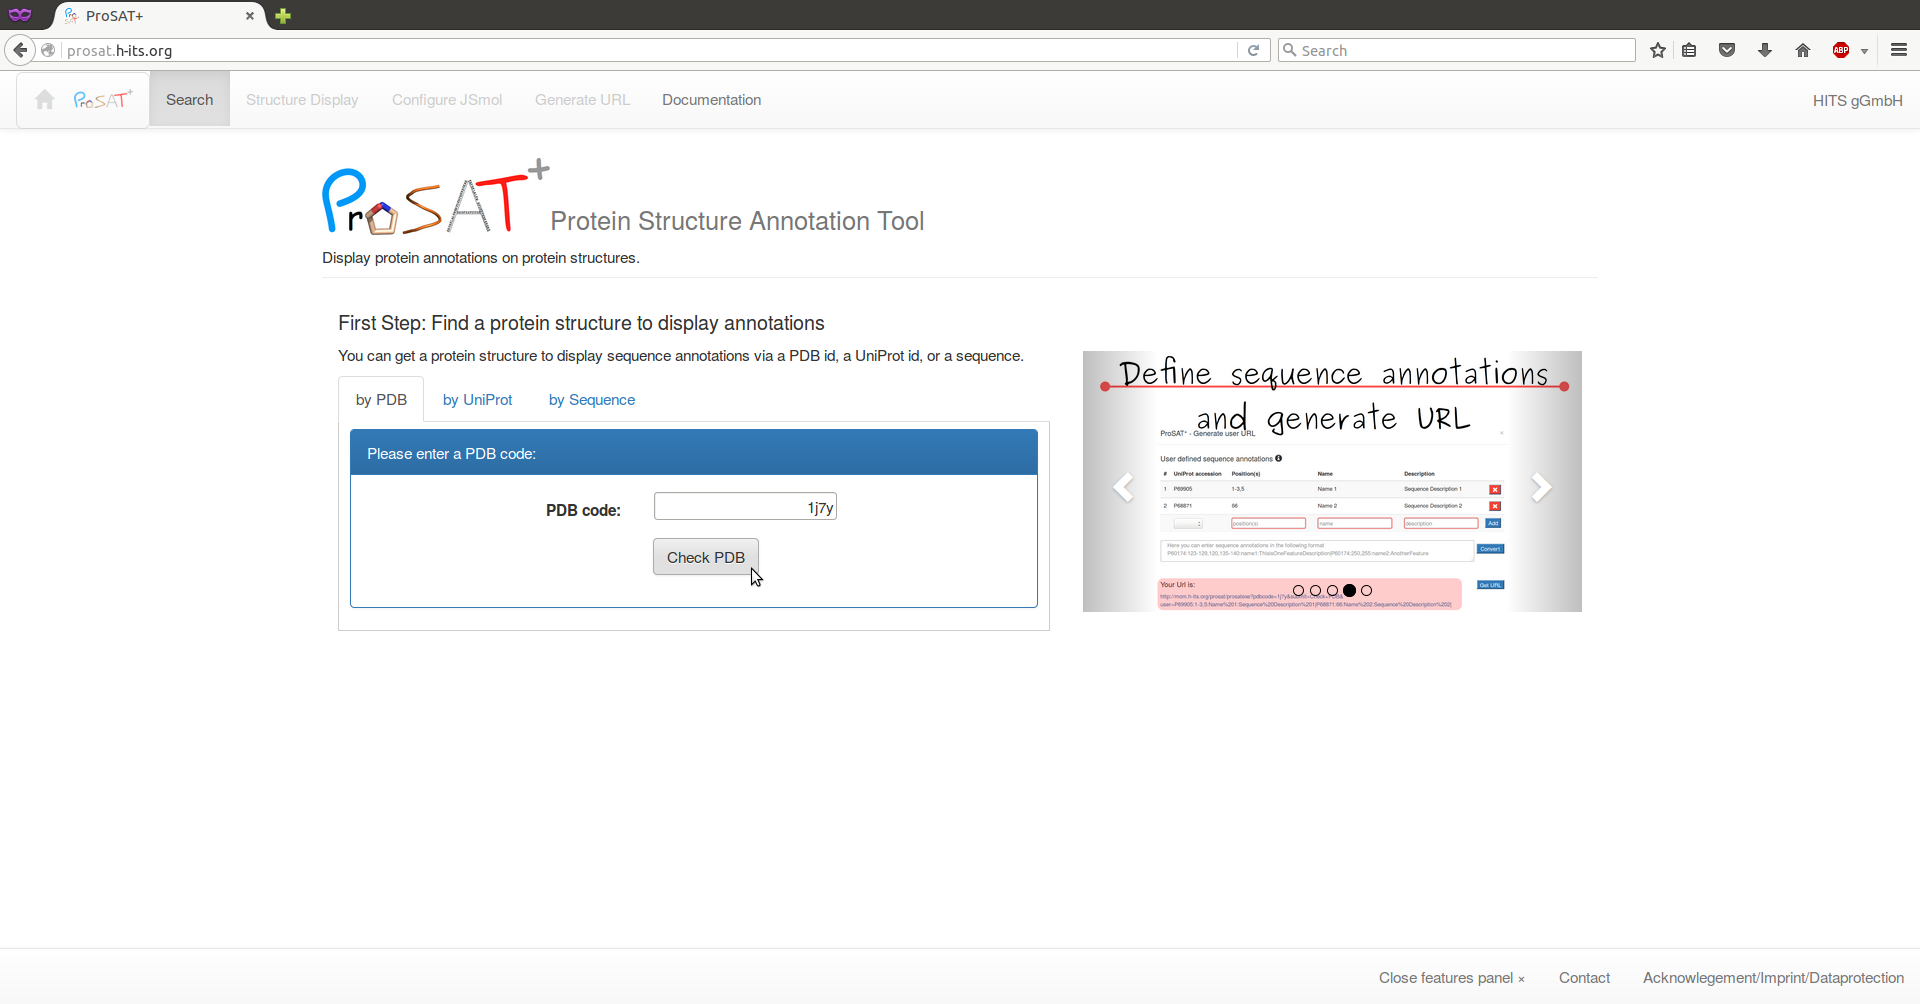 ProSAT+ (Protein Structure Annotation Tool) Documentation Page